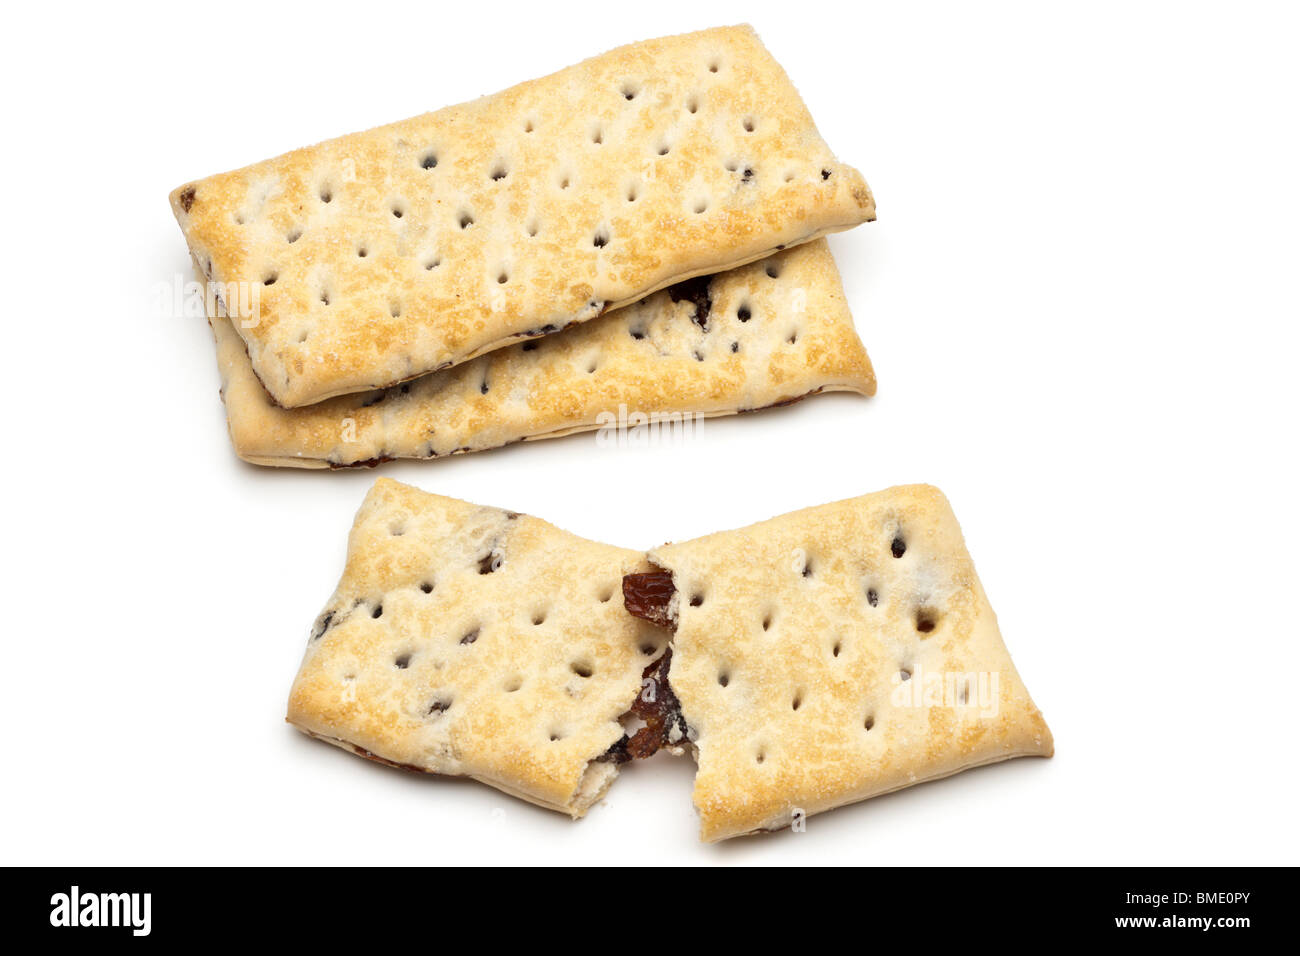 Three oblong shaped fruit filled crispy biscuits - Stock Image